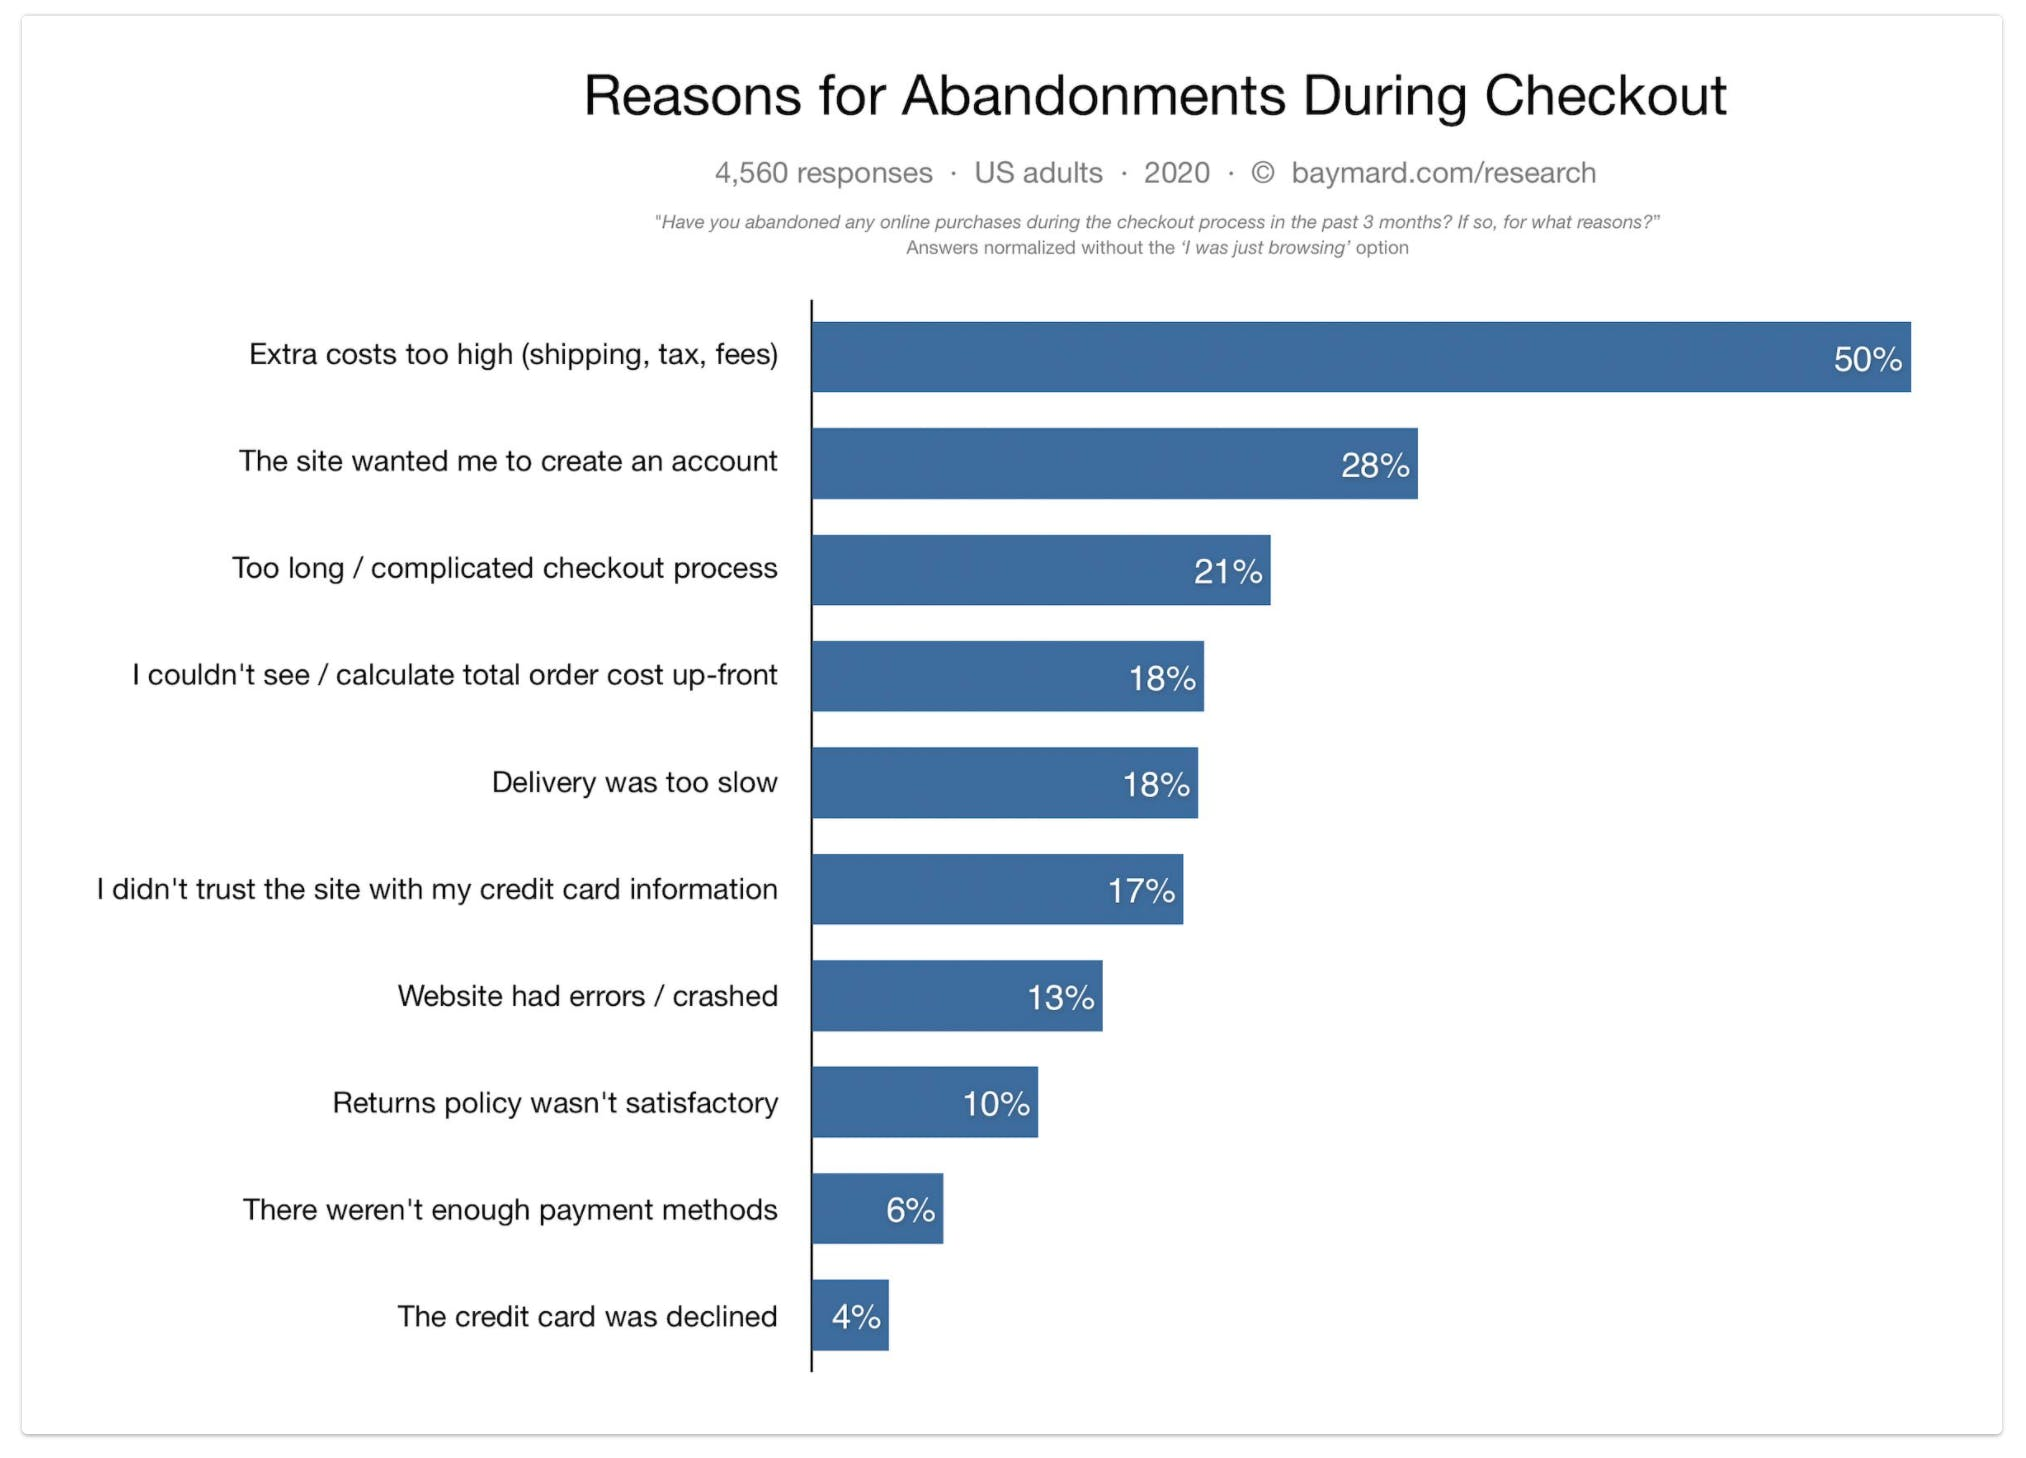 Baymard reasons for abandonments during checkout